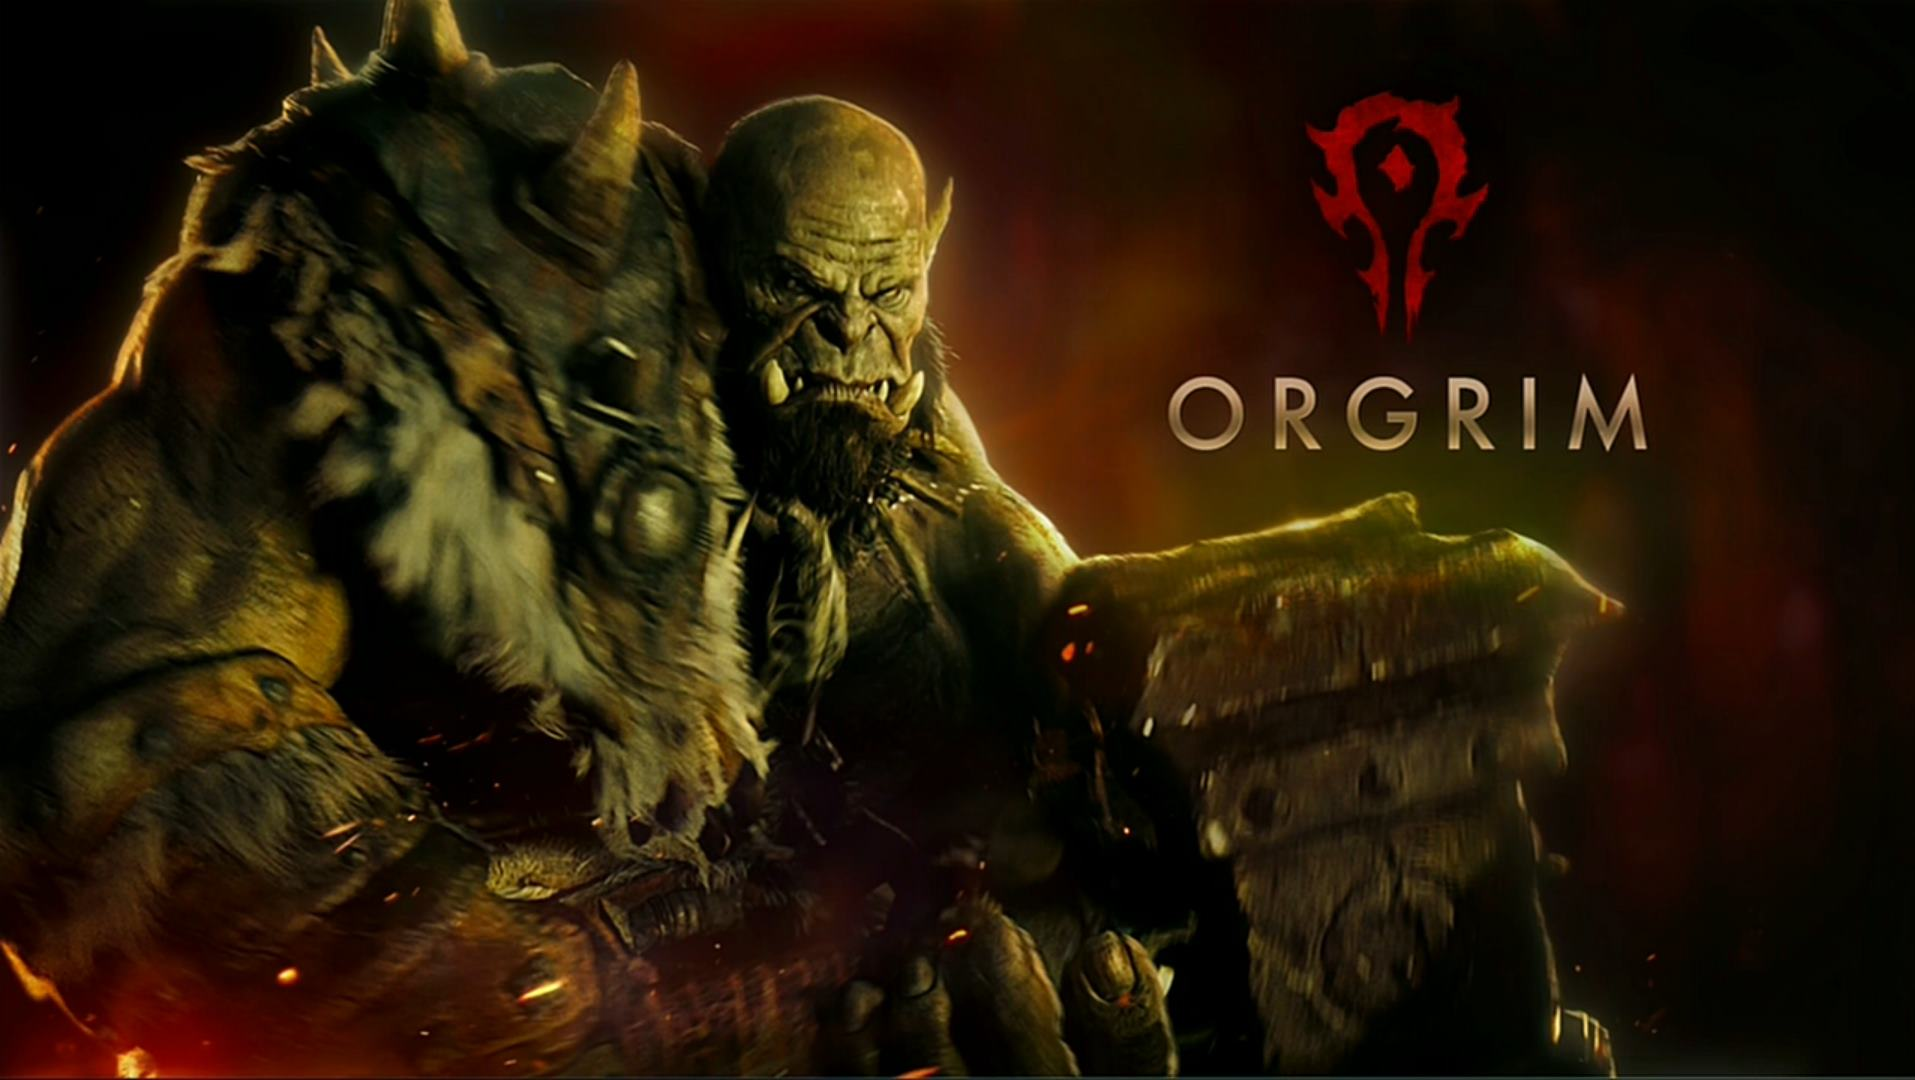 Here's what the Warcraft movie's Orcs will look like